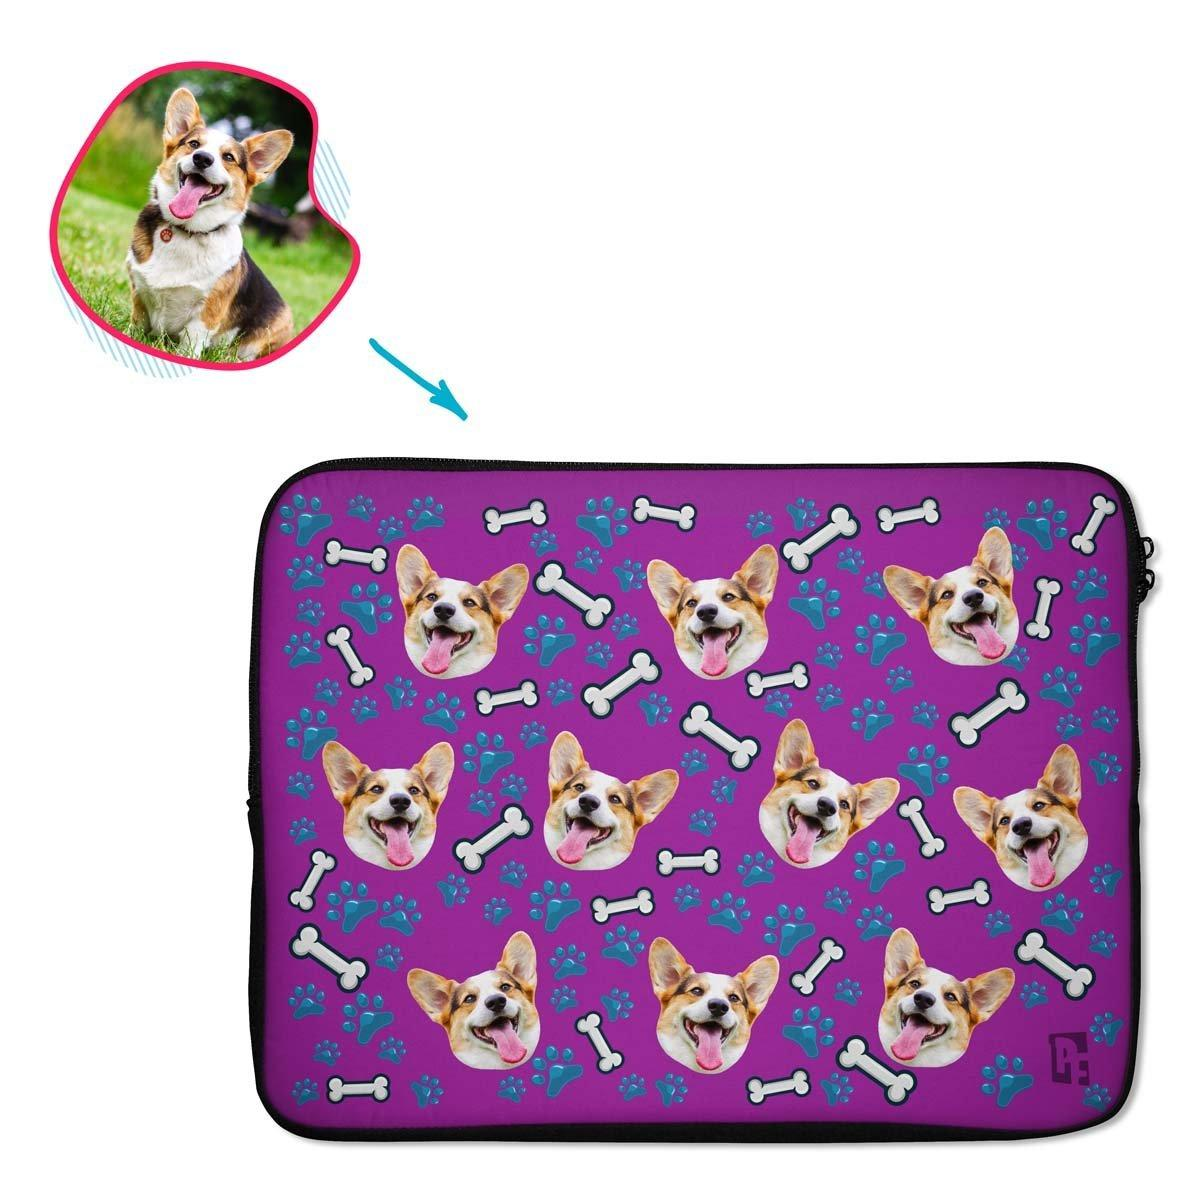 purple Dog laptop sleeve personalized with photo of face printed on them